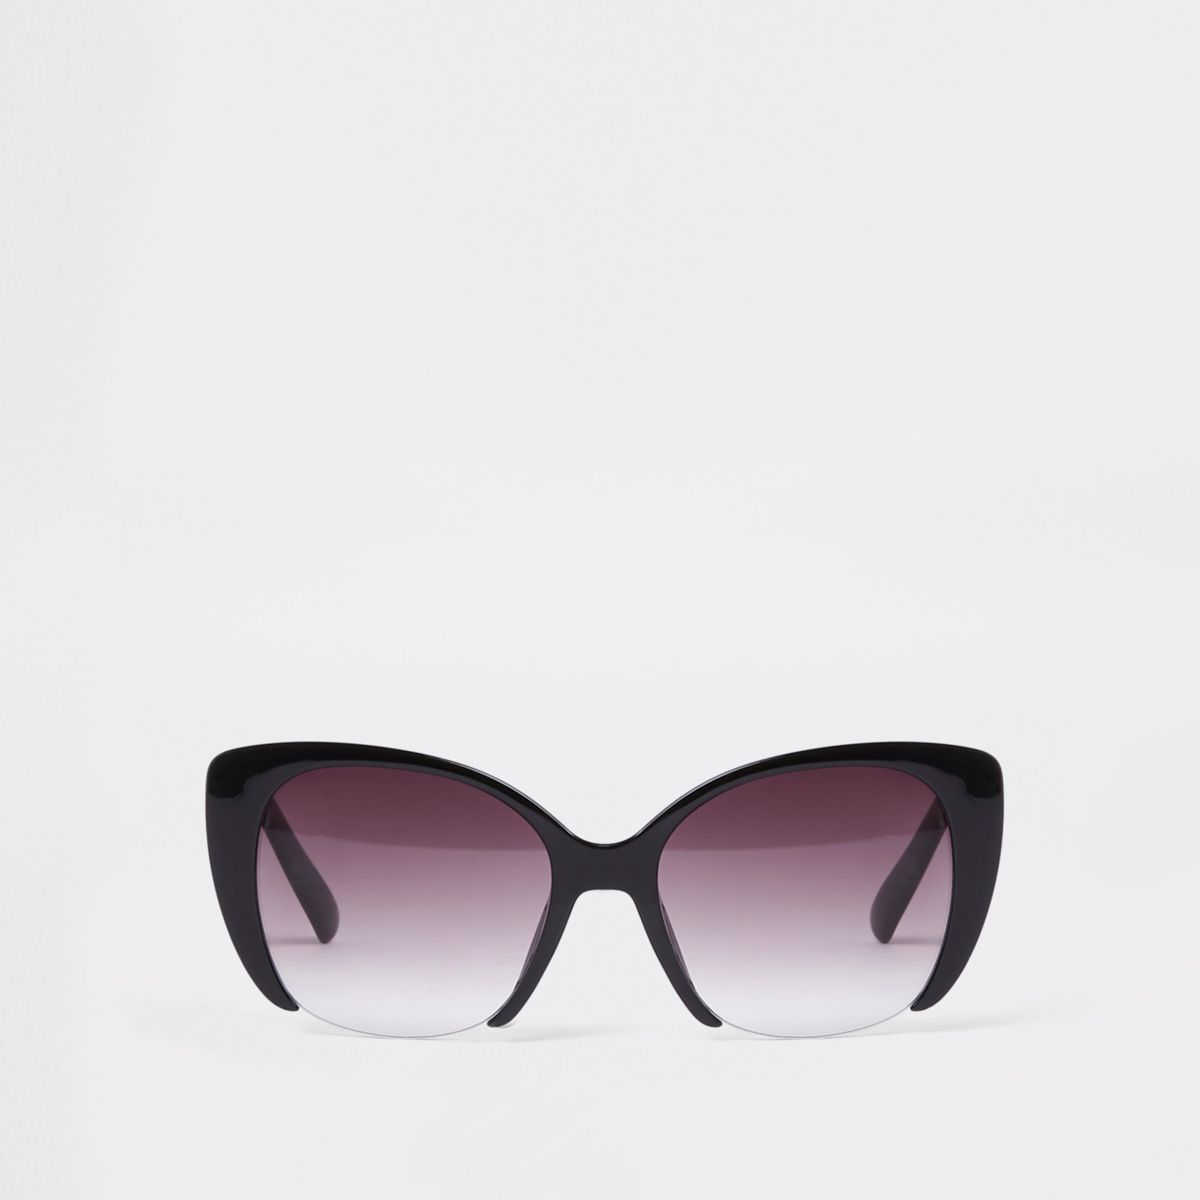 Black cut out lens glam sunglasses